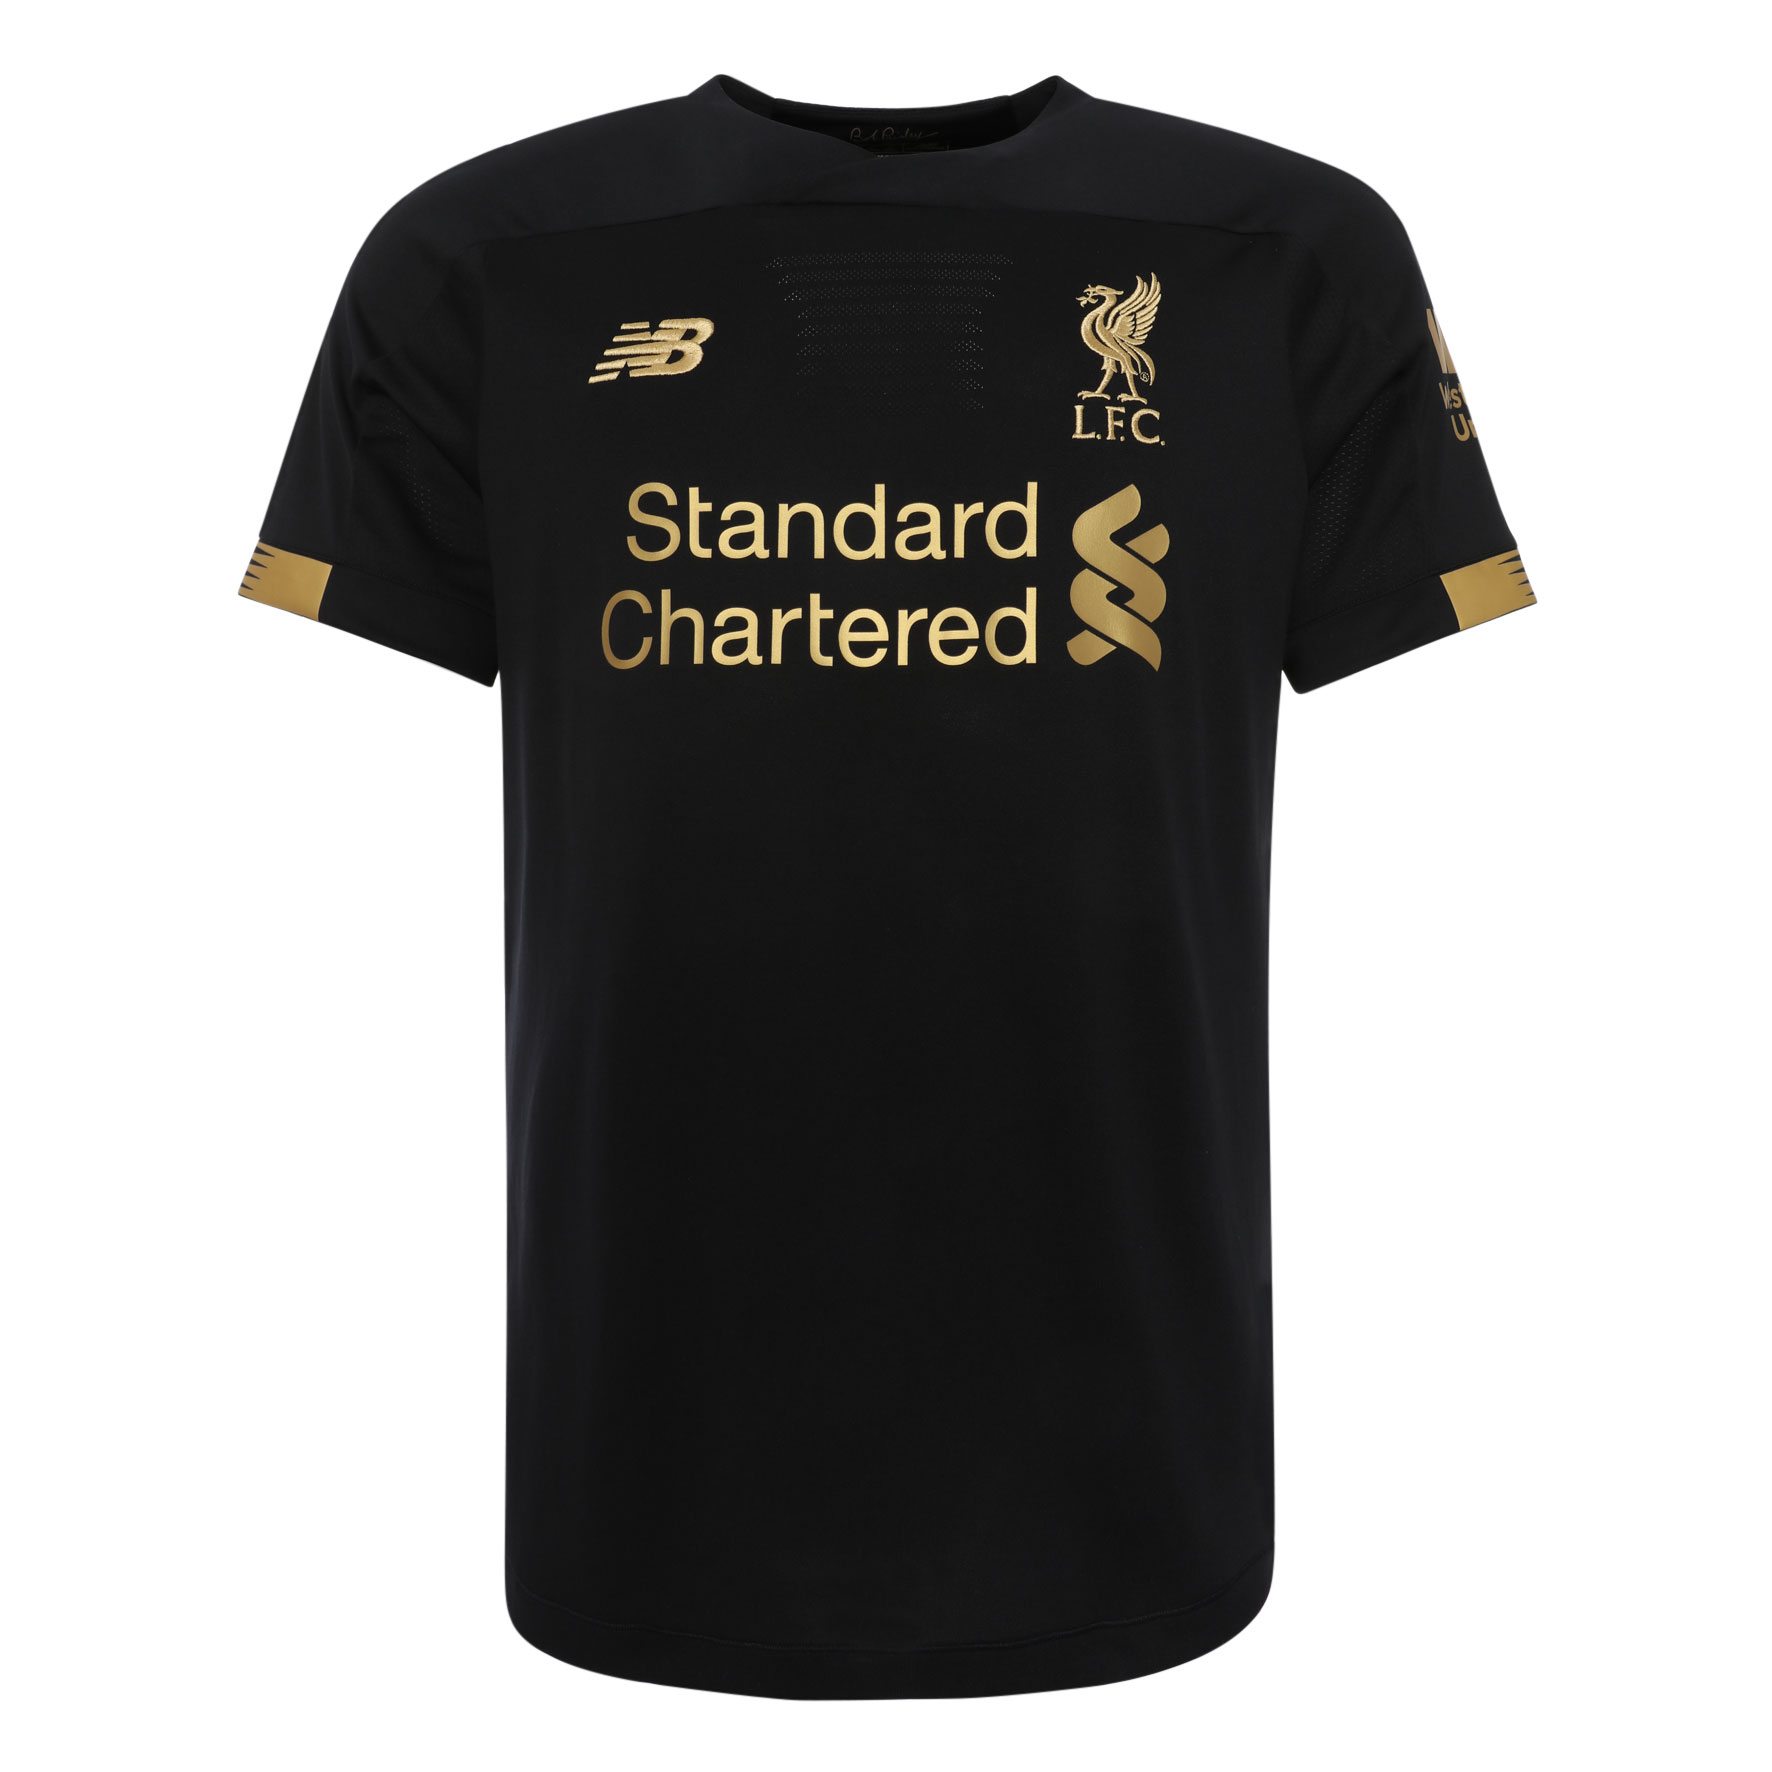 4e95274c1d7 Liverpool's 2019-20 home kit revealed - pre-order now - Liverpool FC